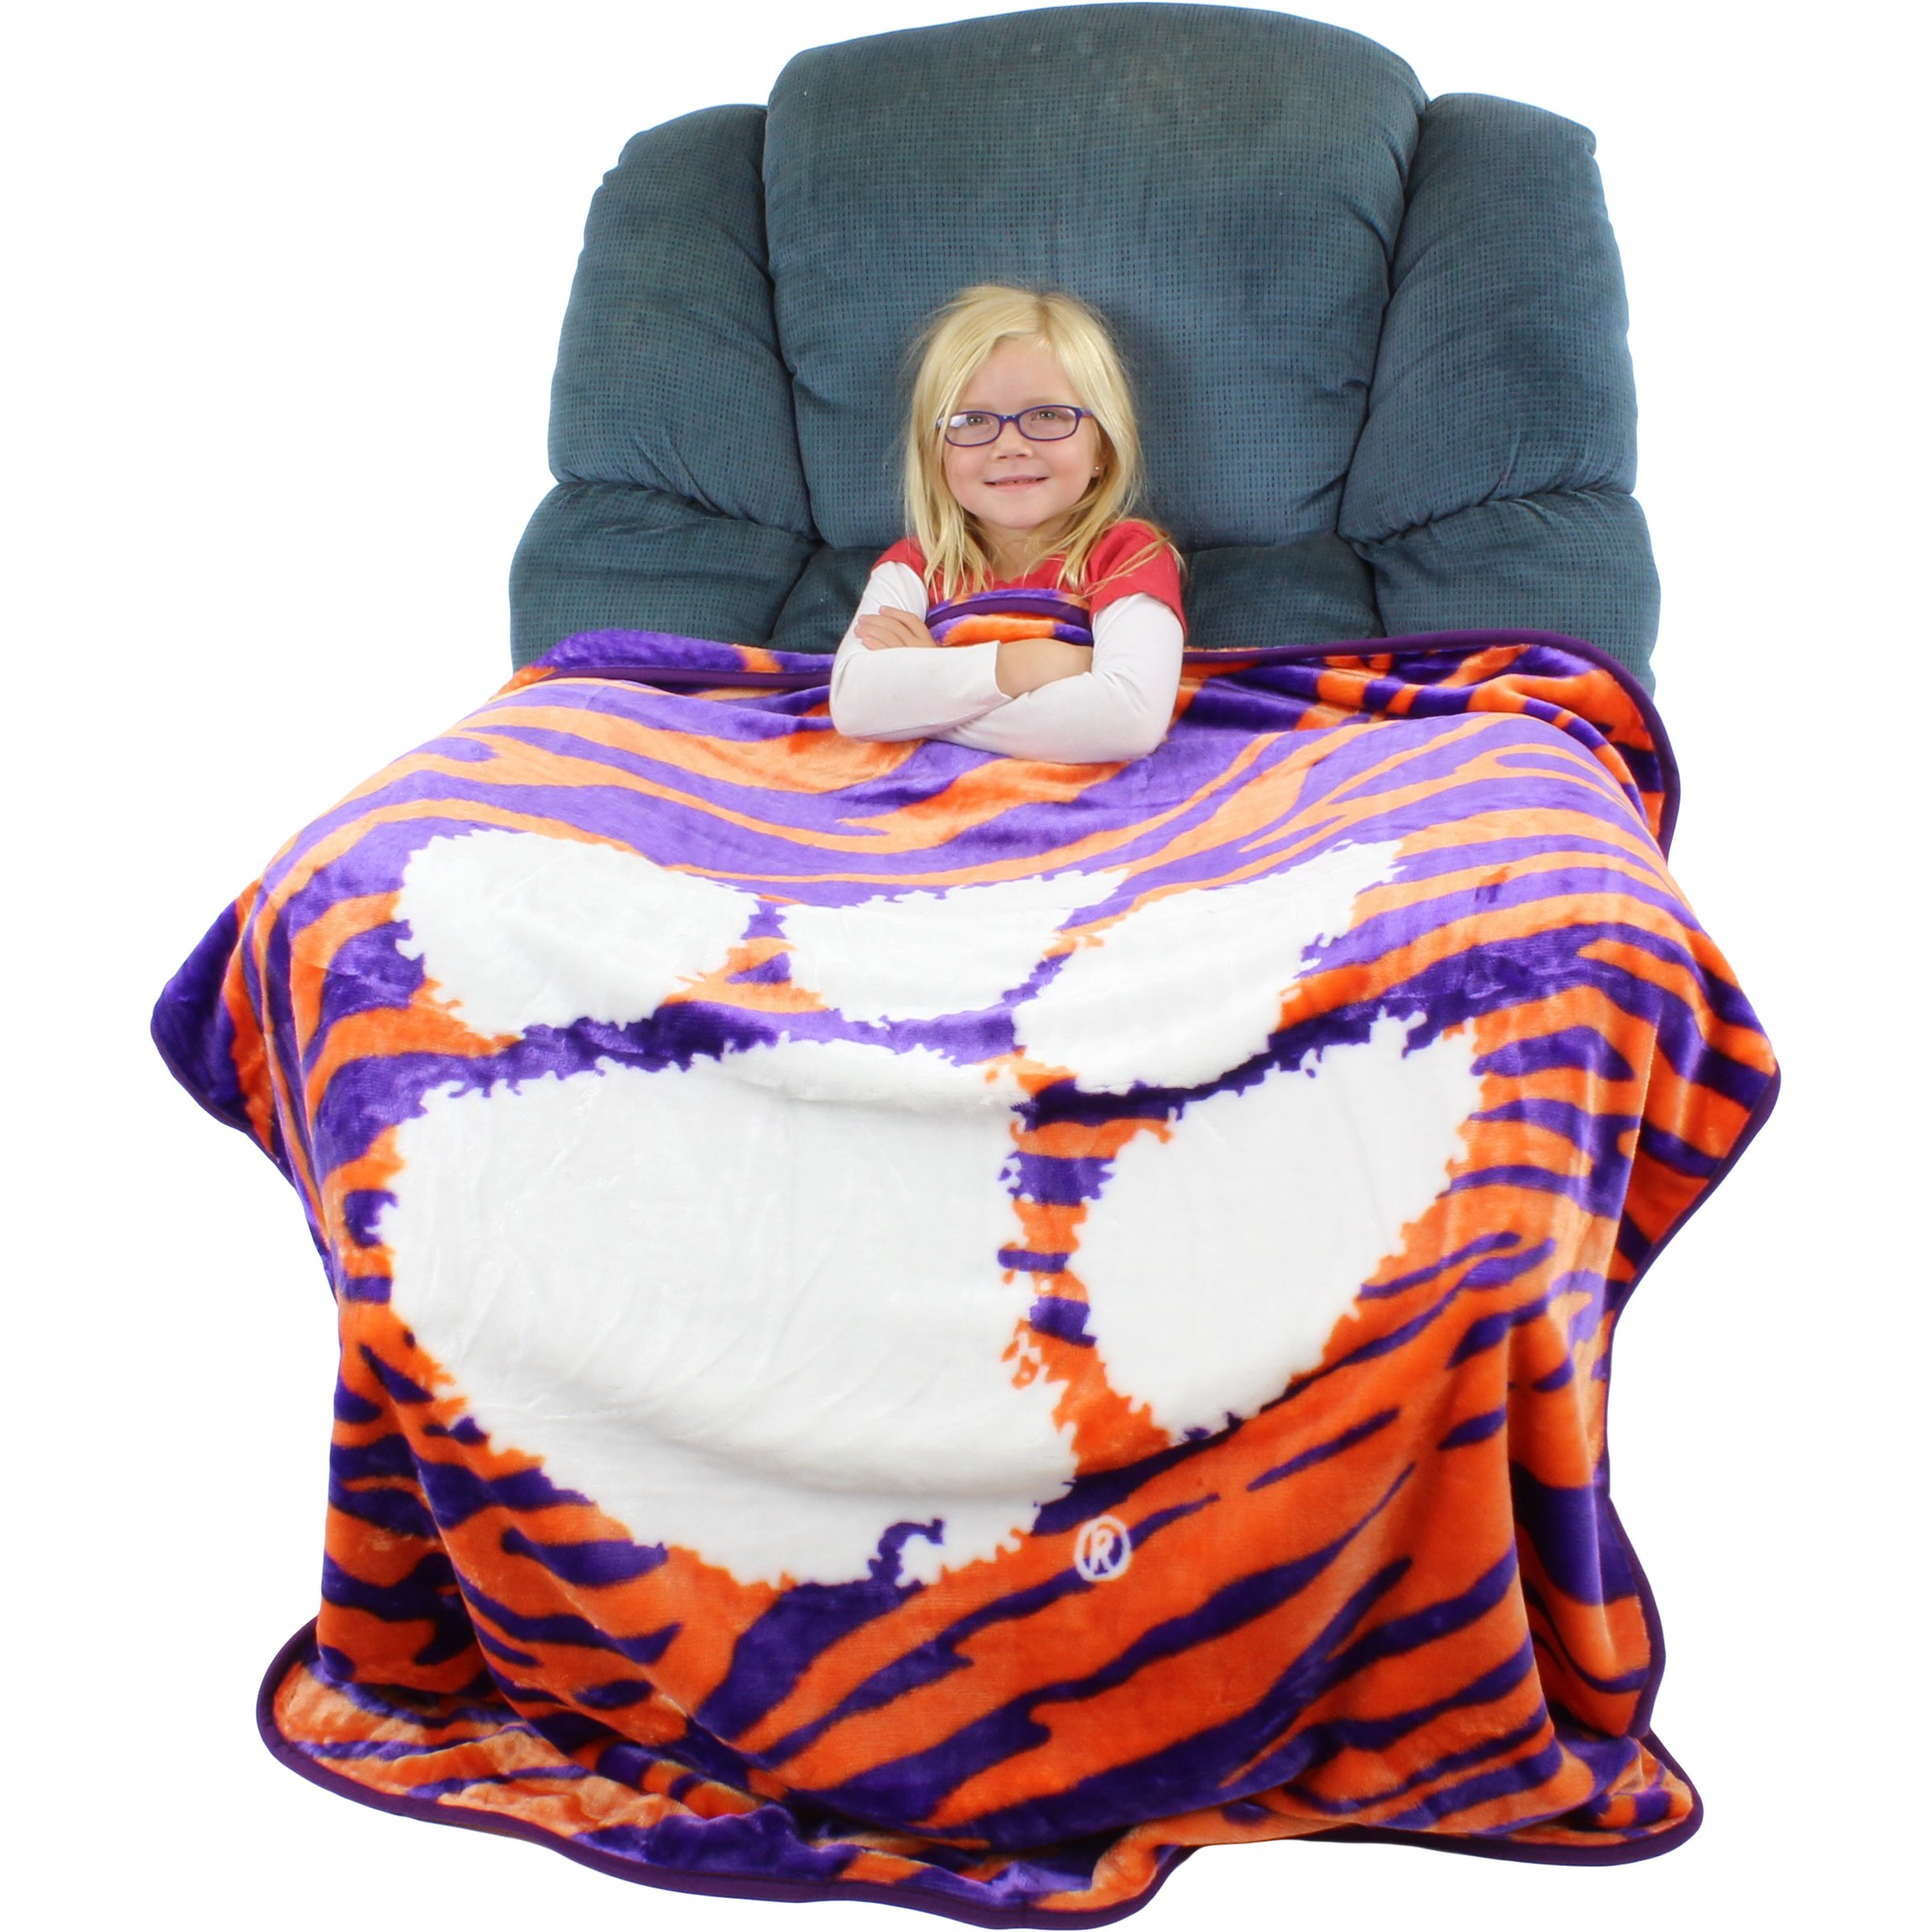 College Covers Raschel Throw Blanket, 50'' x 60'', Clemson Tigers by College Covers